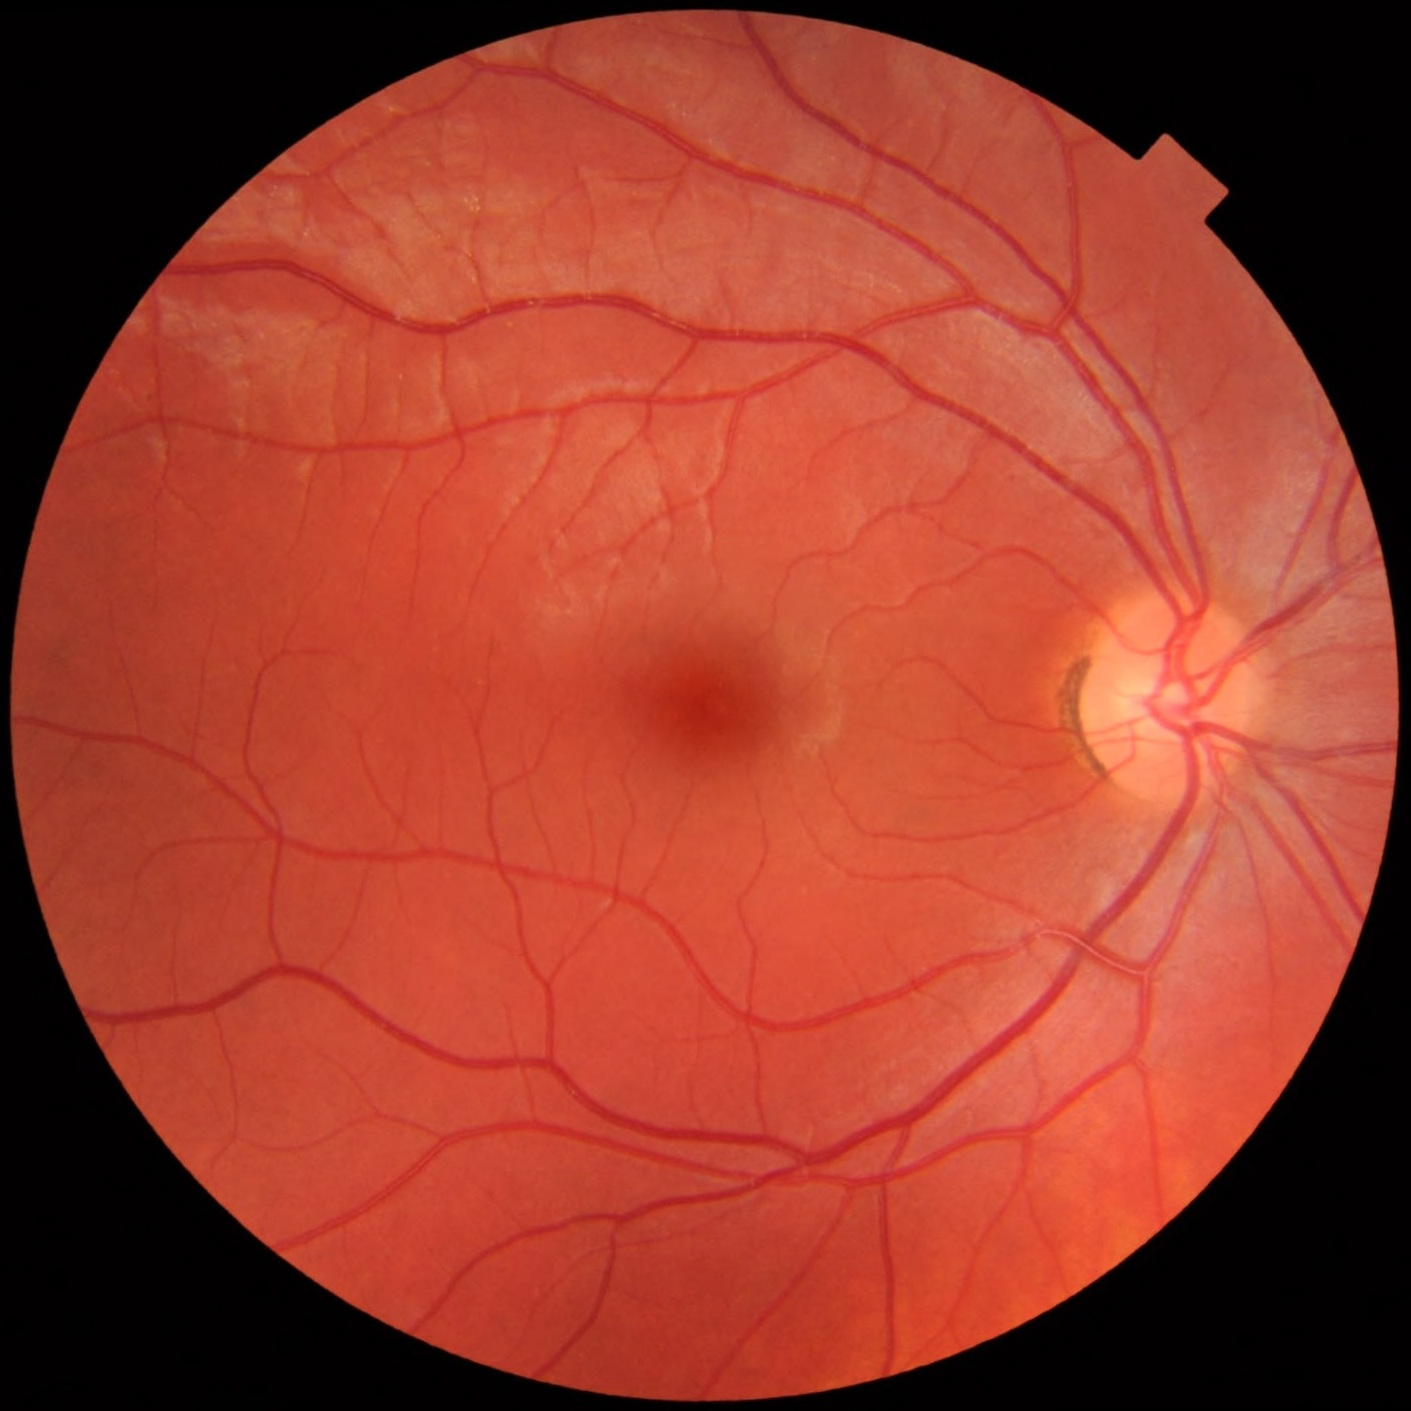 File:Fundus photograph of normal right eye.jpg  Wikimedia Commons